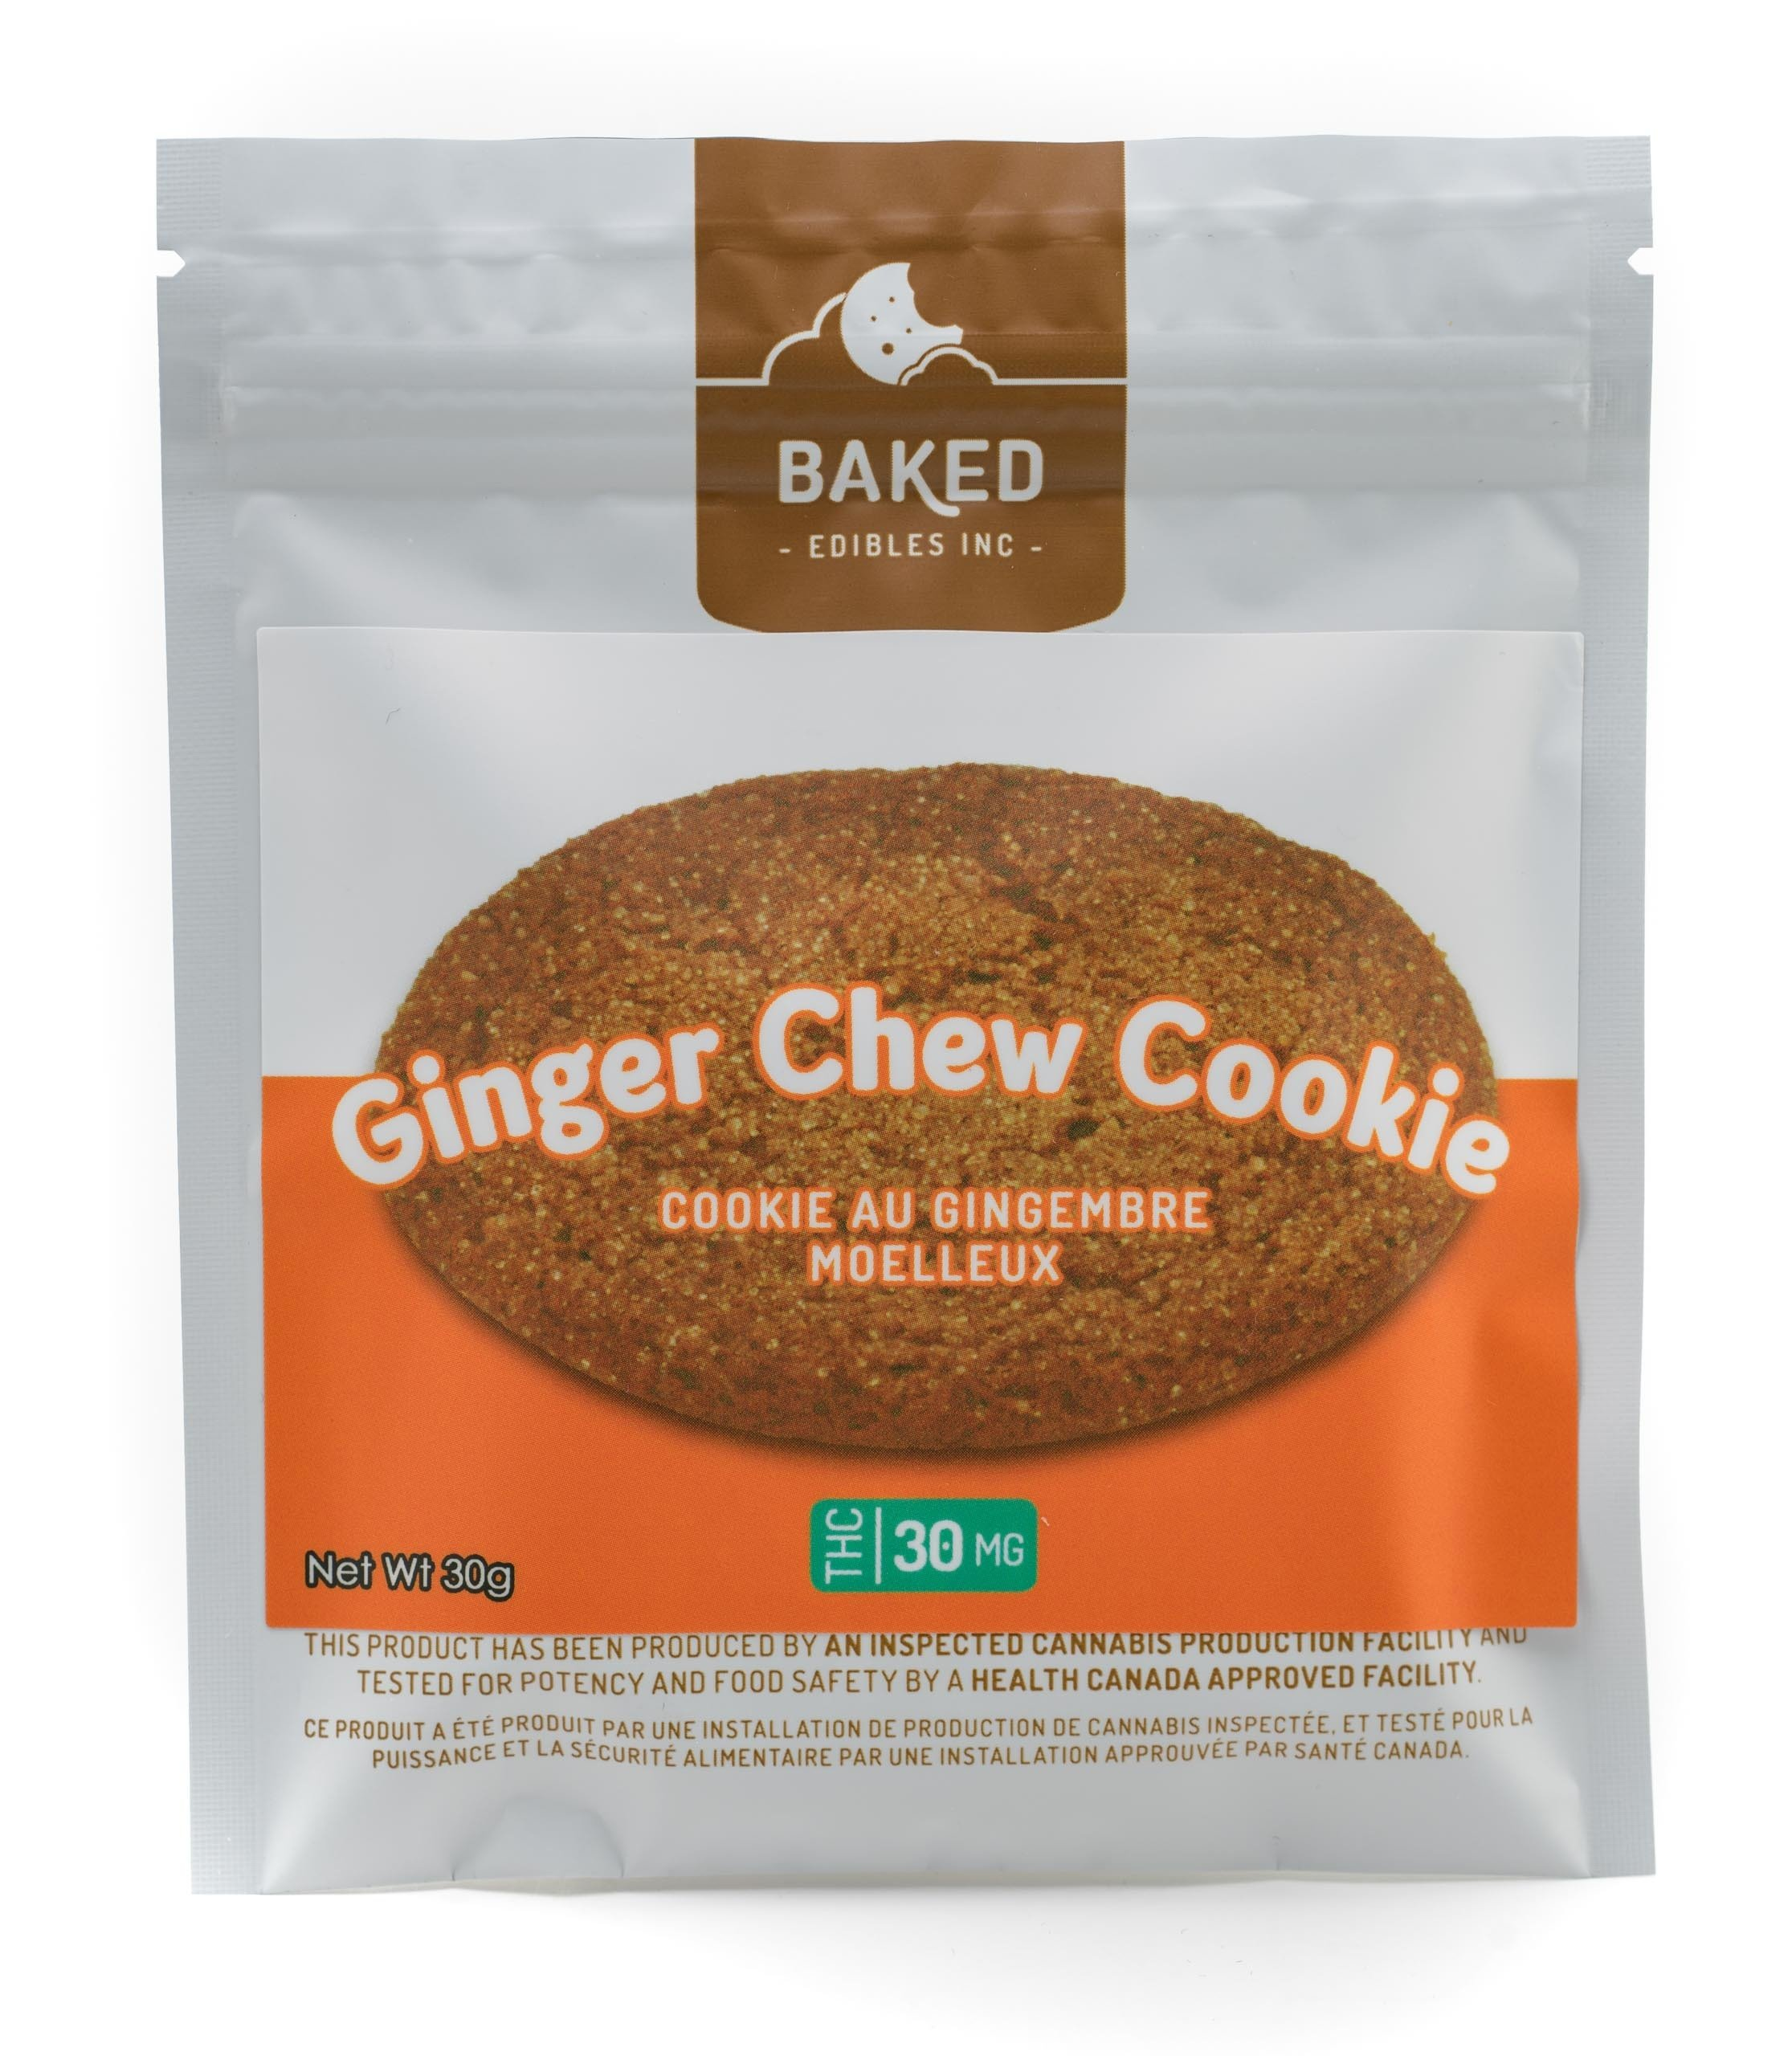 Ginger Chew Cookie (30mg THC) by Baked Edibles 00016